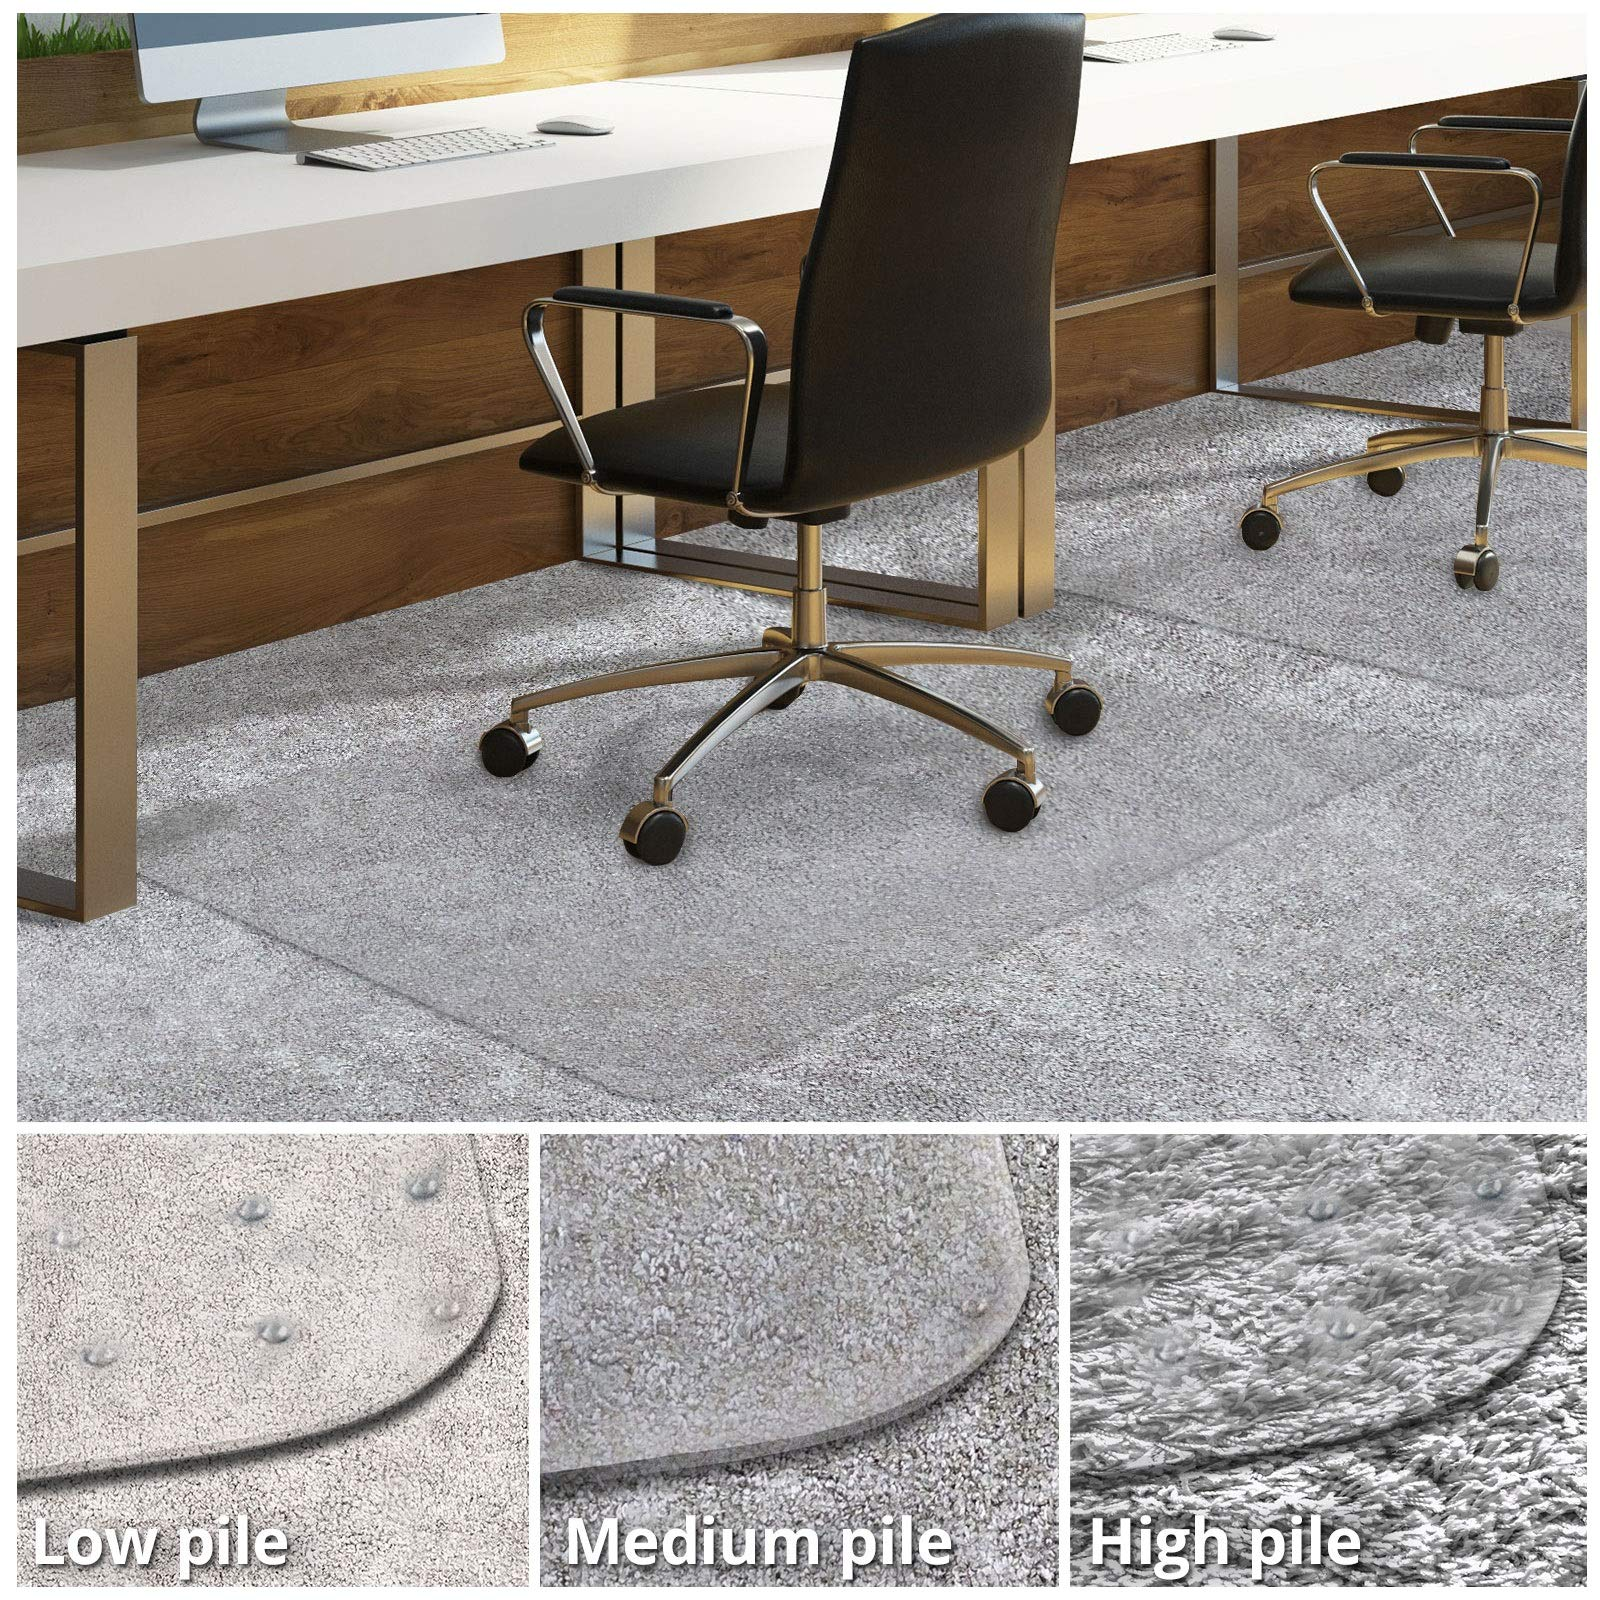 Office Chair Mat for Carpeted Floors | Desk Chair Mat for Carpet | Clear PVC Mat in Different Thicknesses and Sizes for Every Pile Type | Medium-Pile 36''x48'' by OfficeMarshal